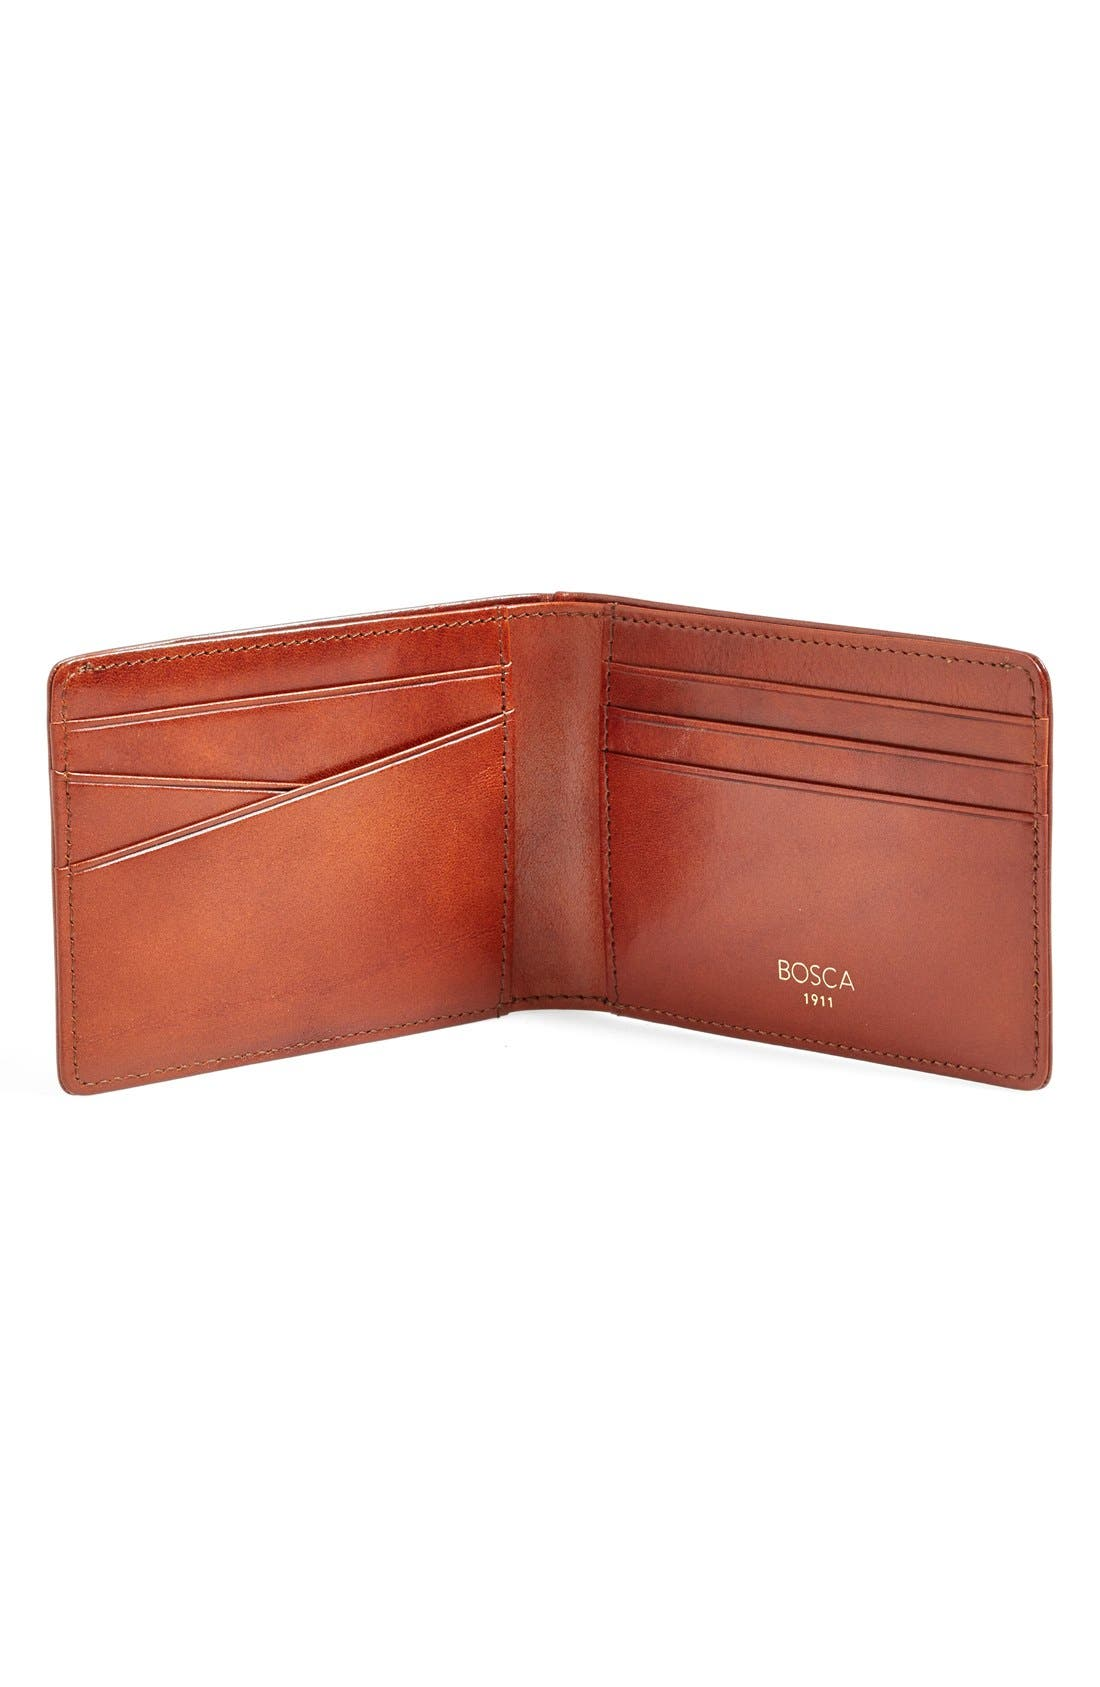 Small Bifold Wallet,                             Alternate thumbnail 4, color,                             AMBER